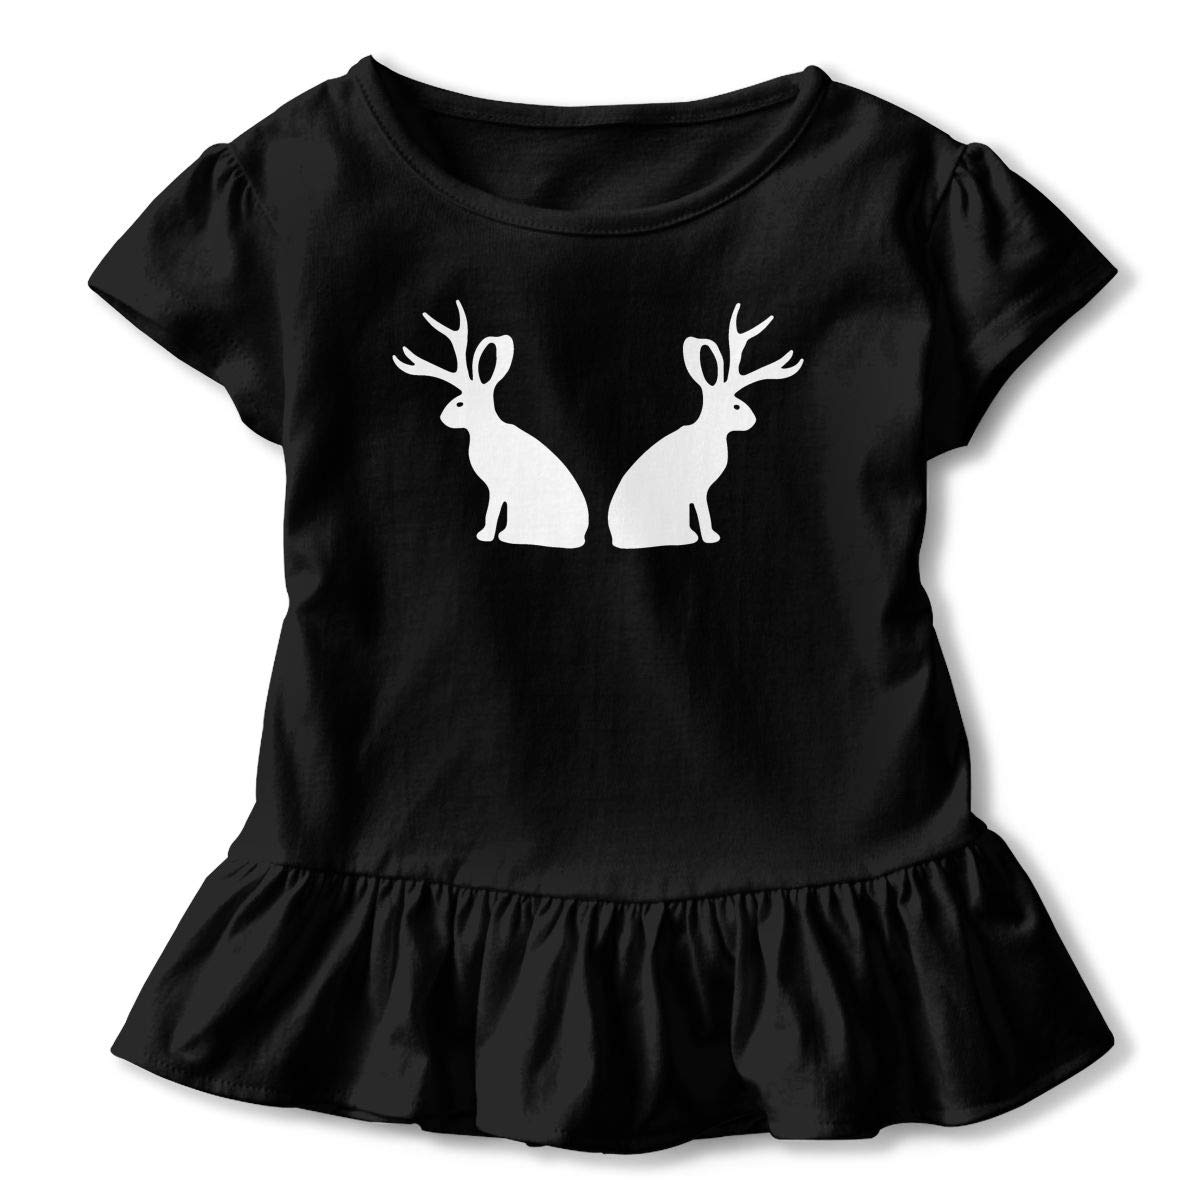 Rabbit with Antlers Baby Girls Short Sleeve Ruffle Tee Cotton Kids T Shirts 2-6 Years